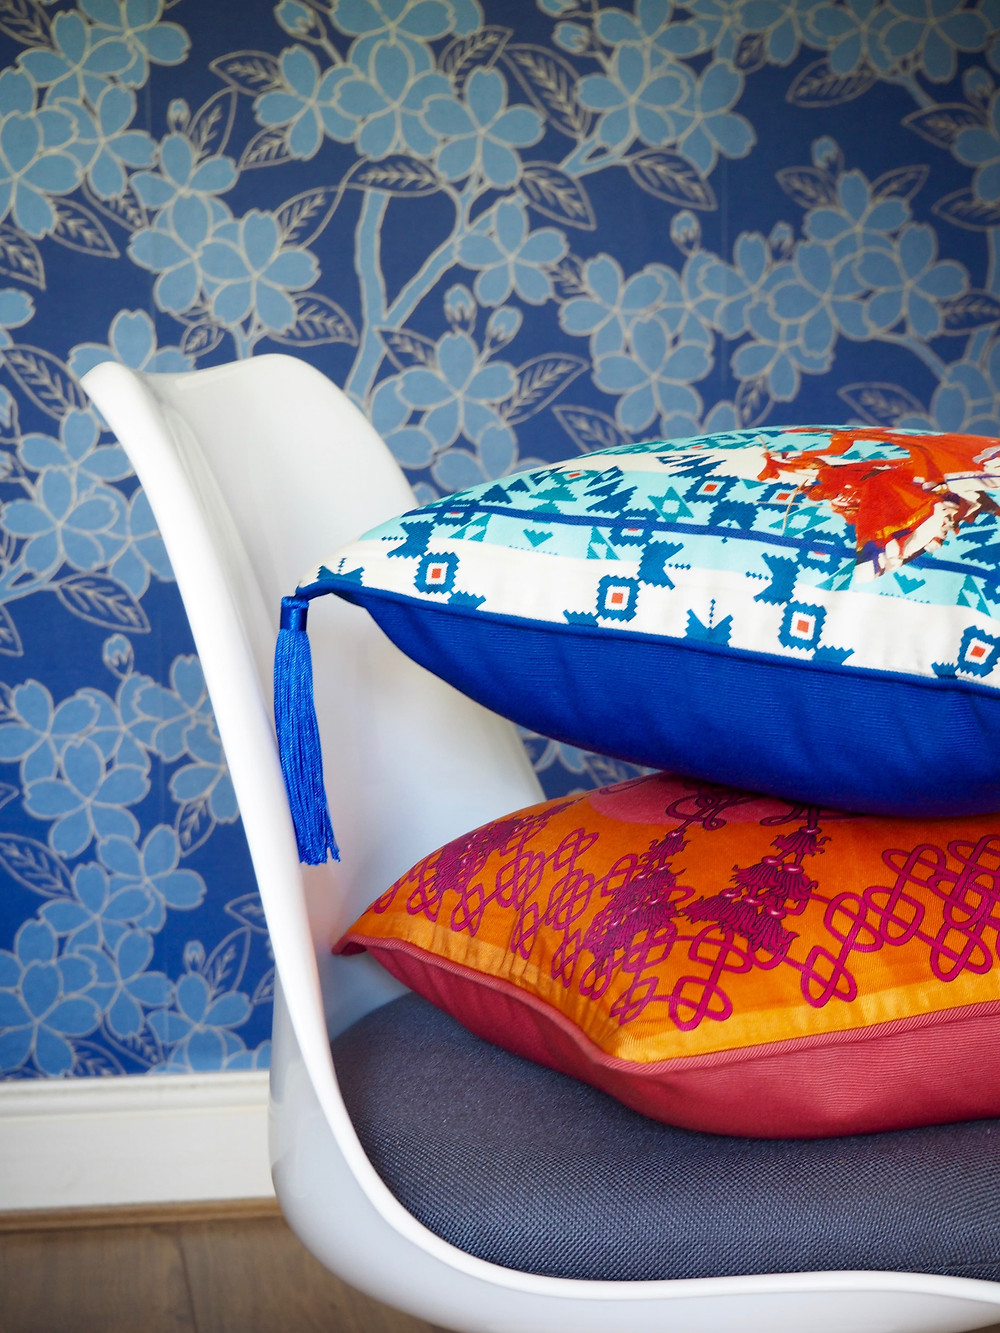 Silk twill blue and pink orange cushions by Bivain on a white Tulip chair against a blue wallpaper background